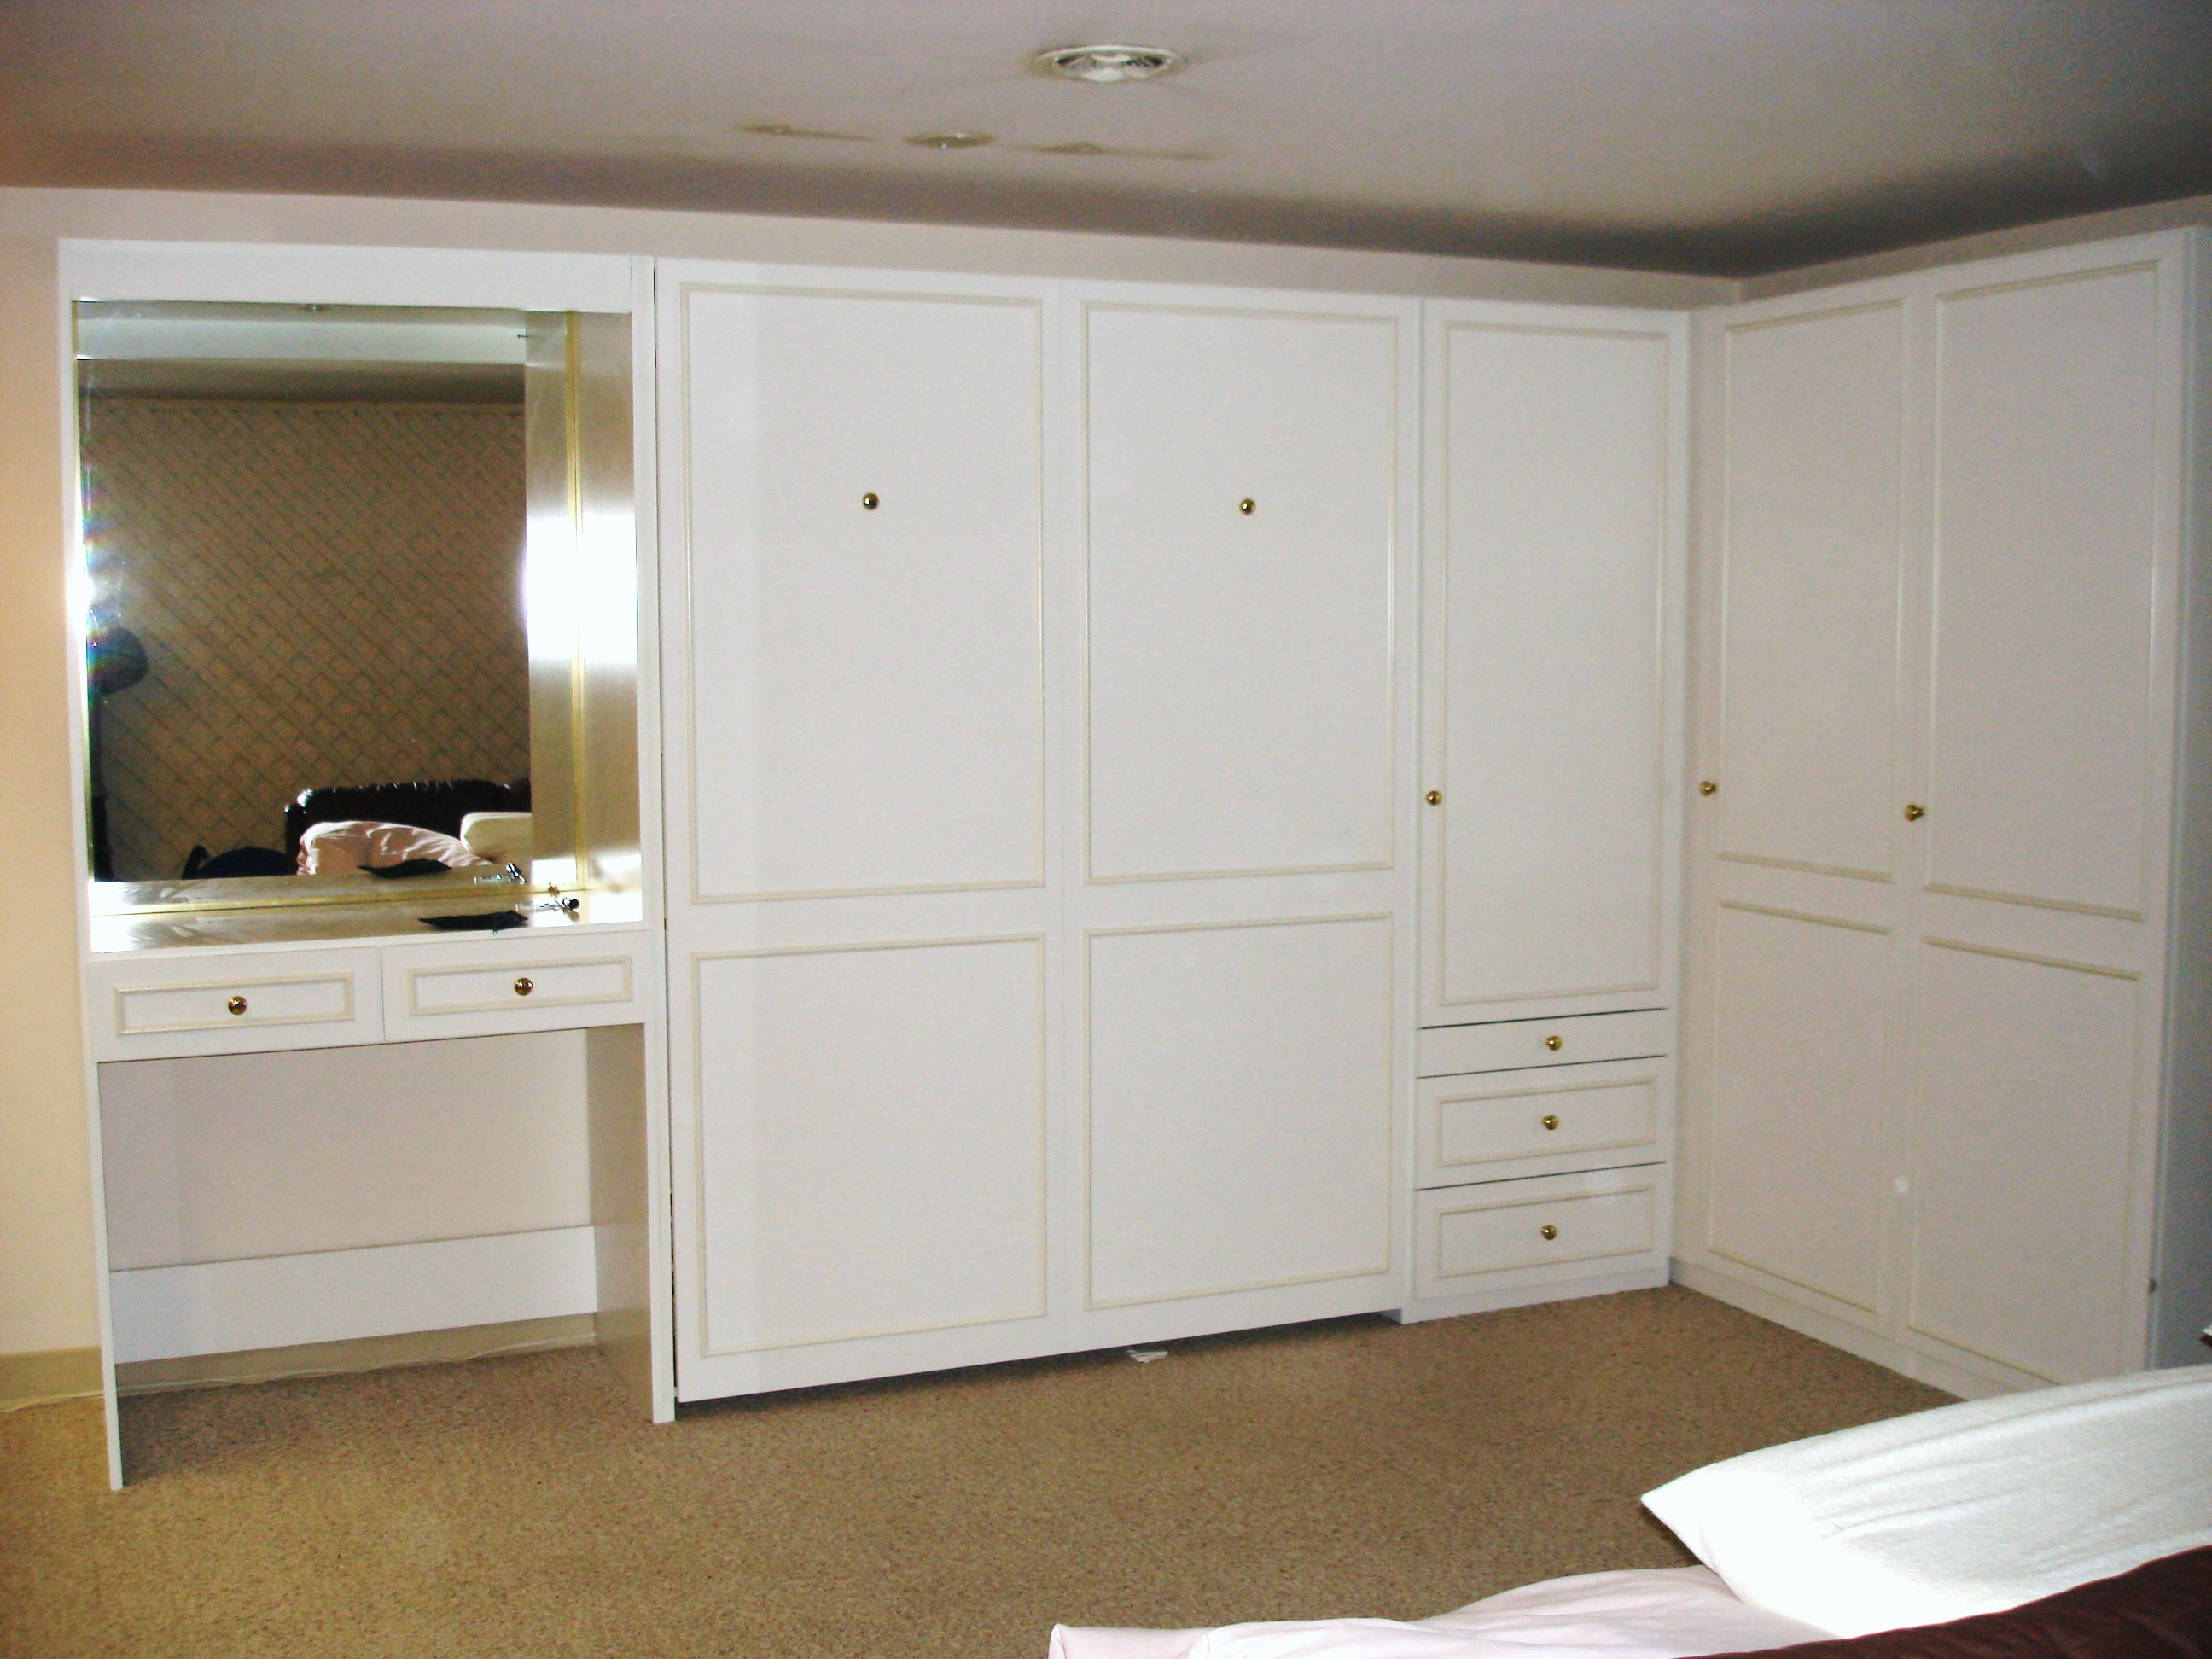 closet proportions simple concepts california closets northwest of x bed photo throughout beds superb murphy